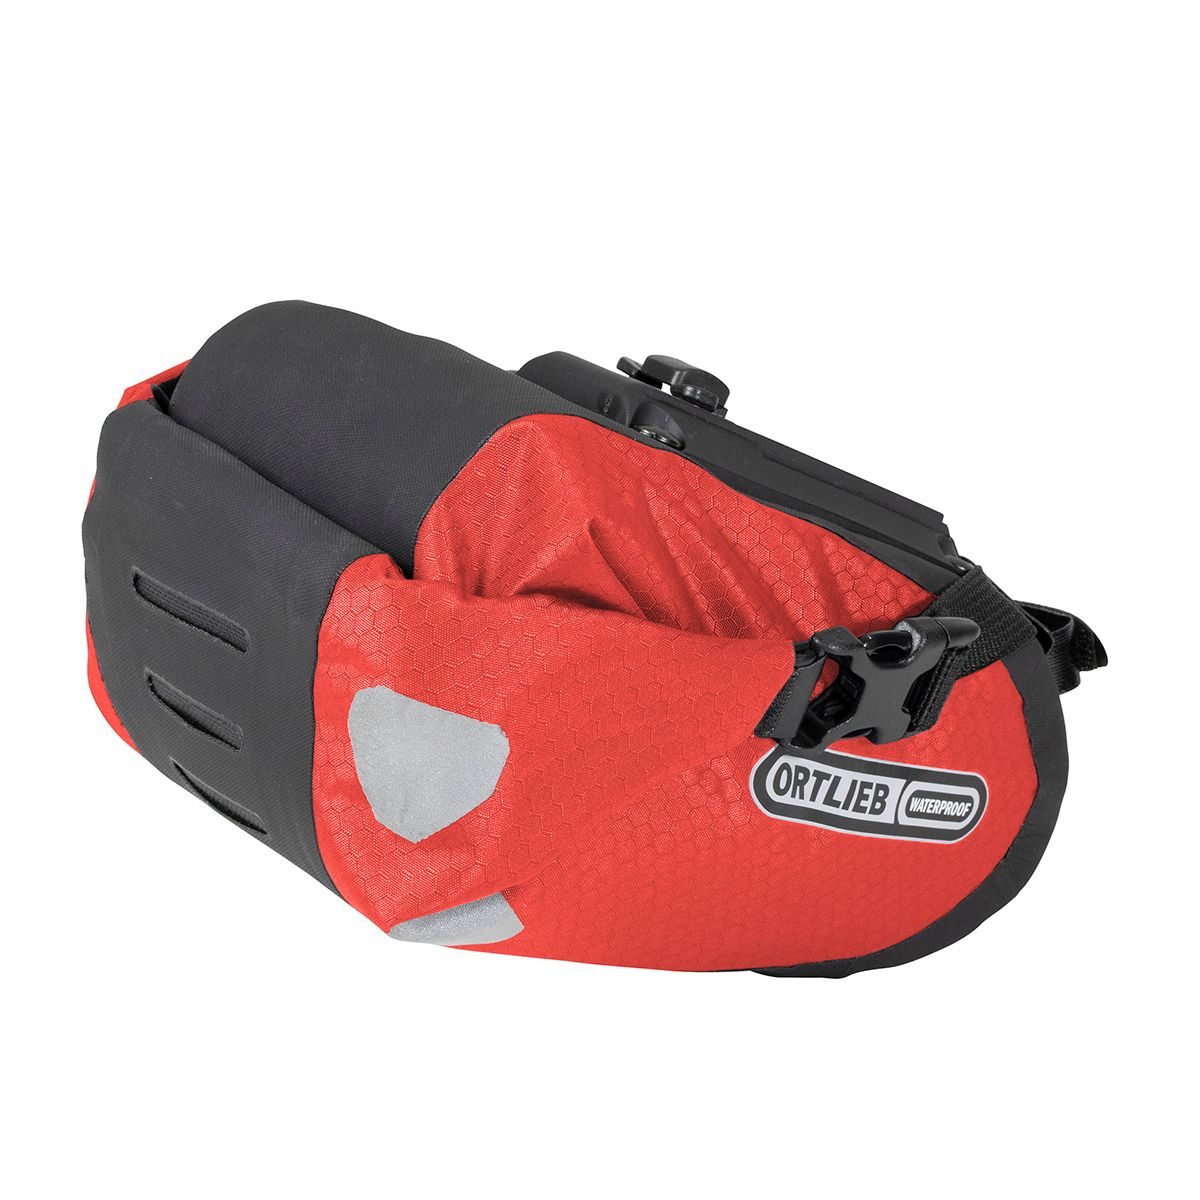 ORTLIEB SADDLE-BAG TWO 1,6 | Saddle bags